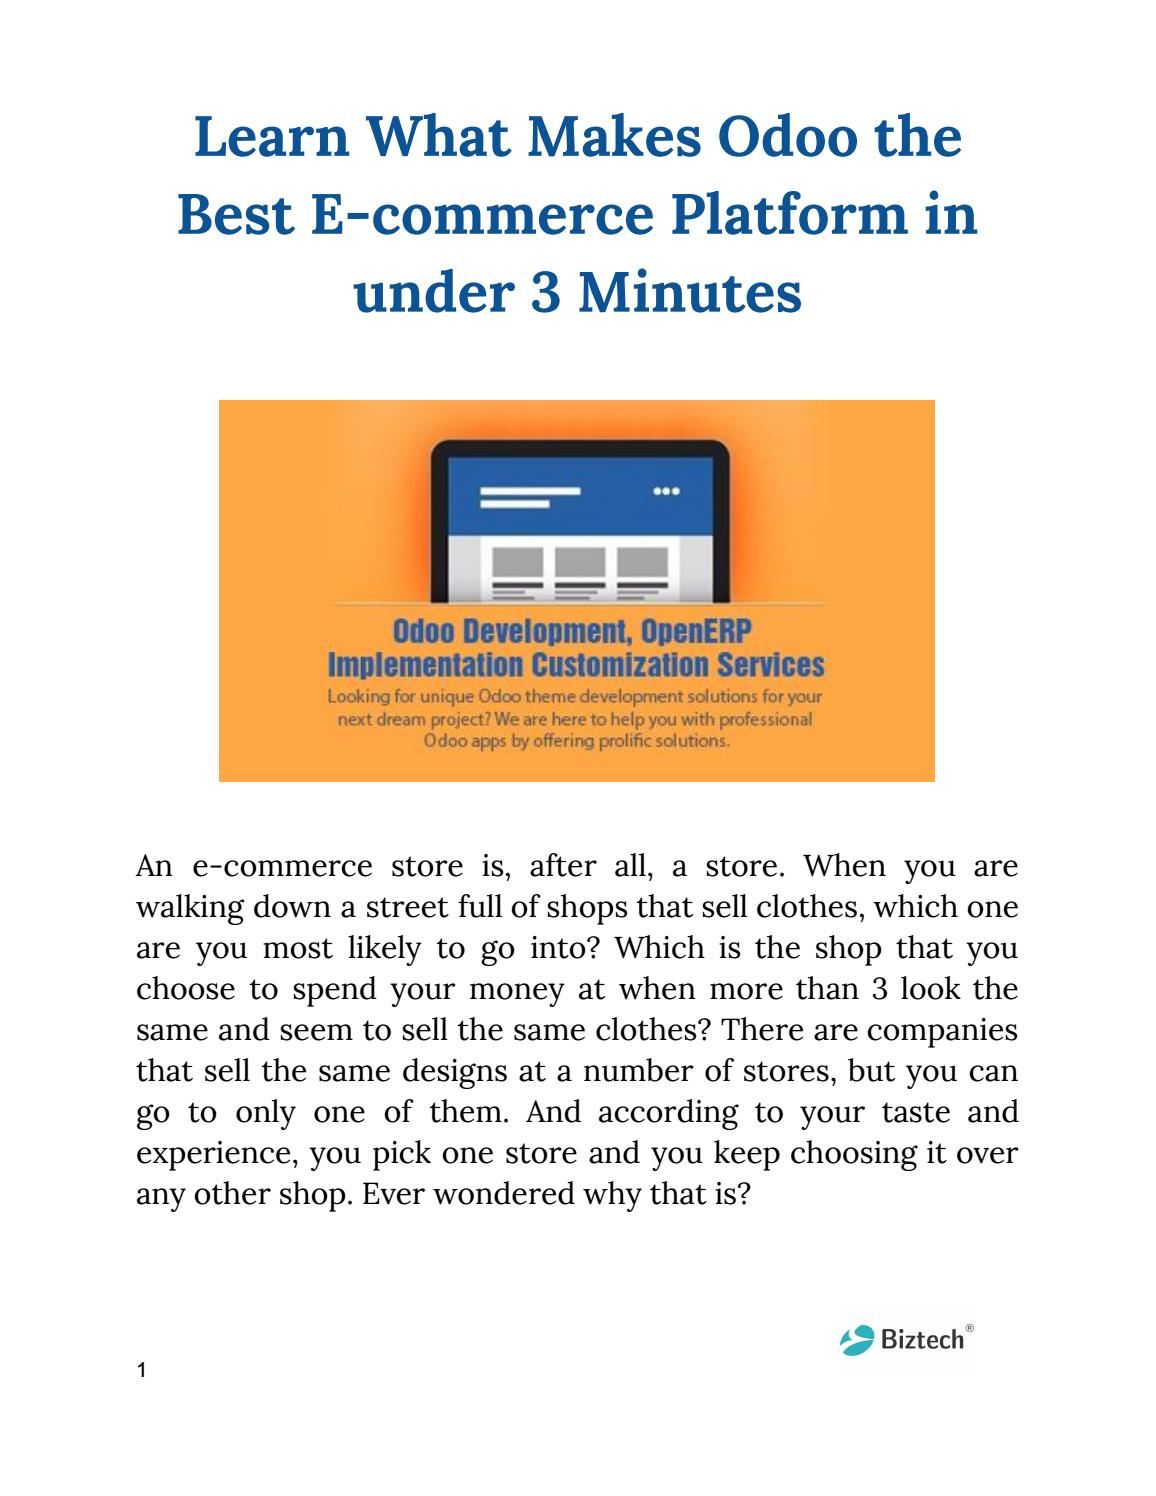 Learn What Makes Odoo the Best E-commerce Platform in under 3